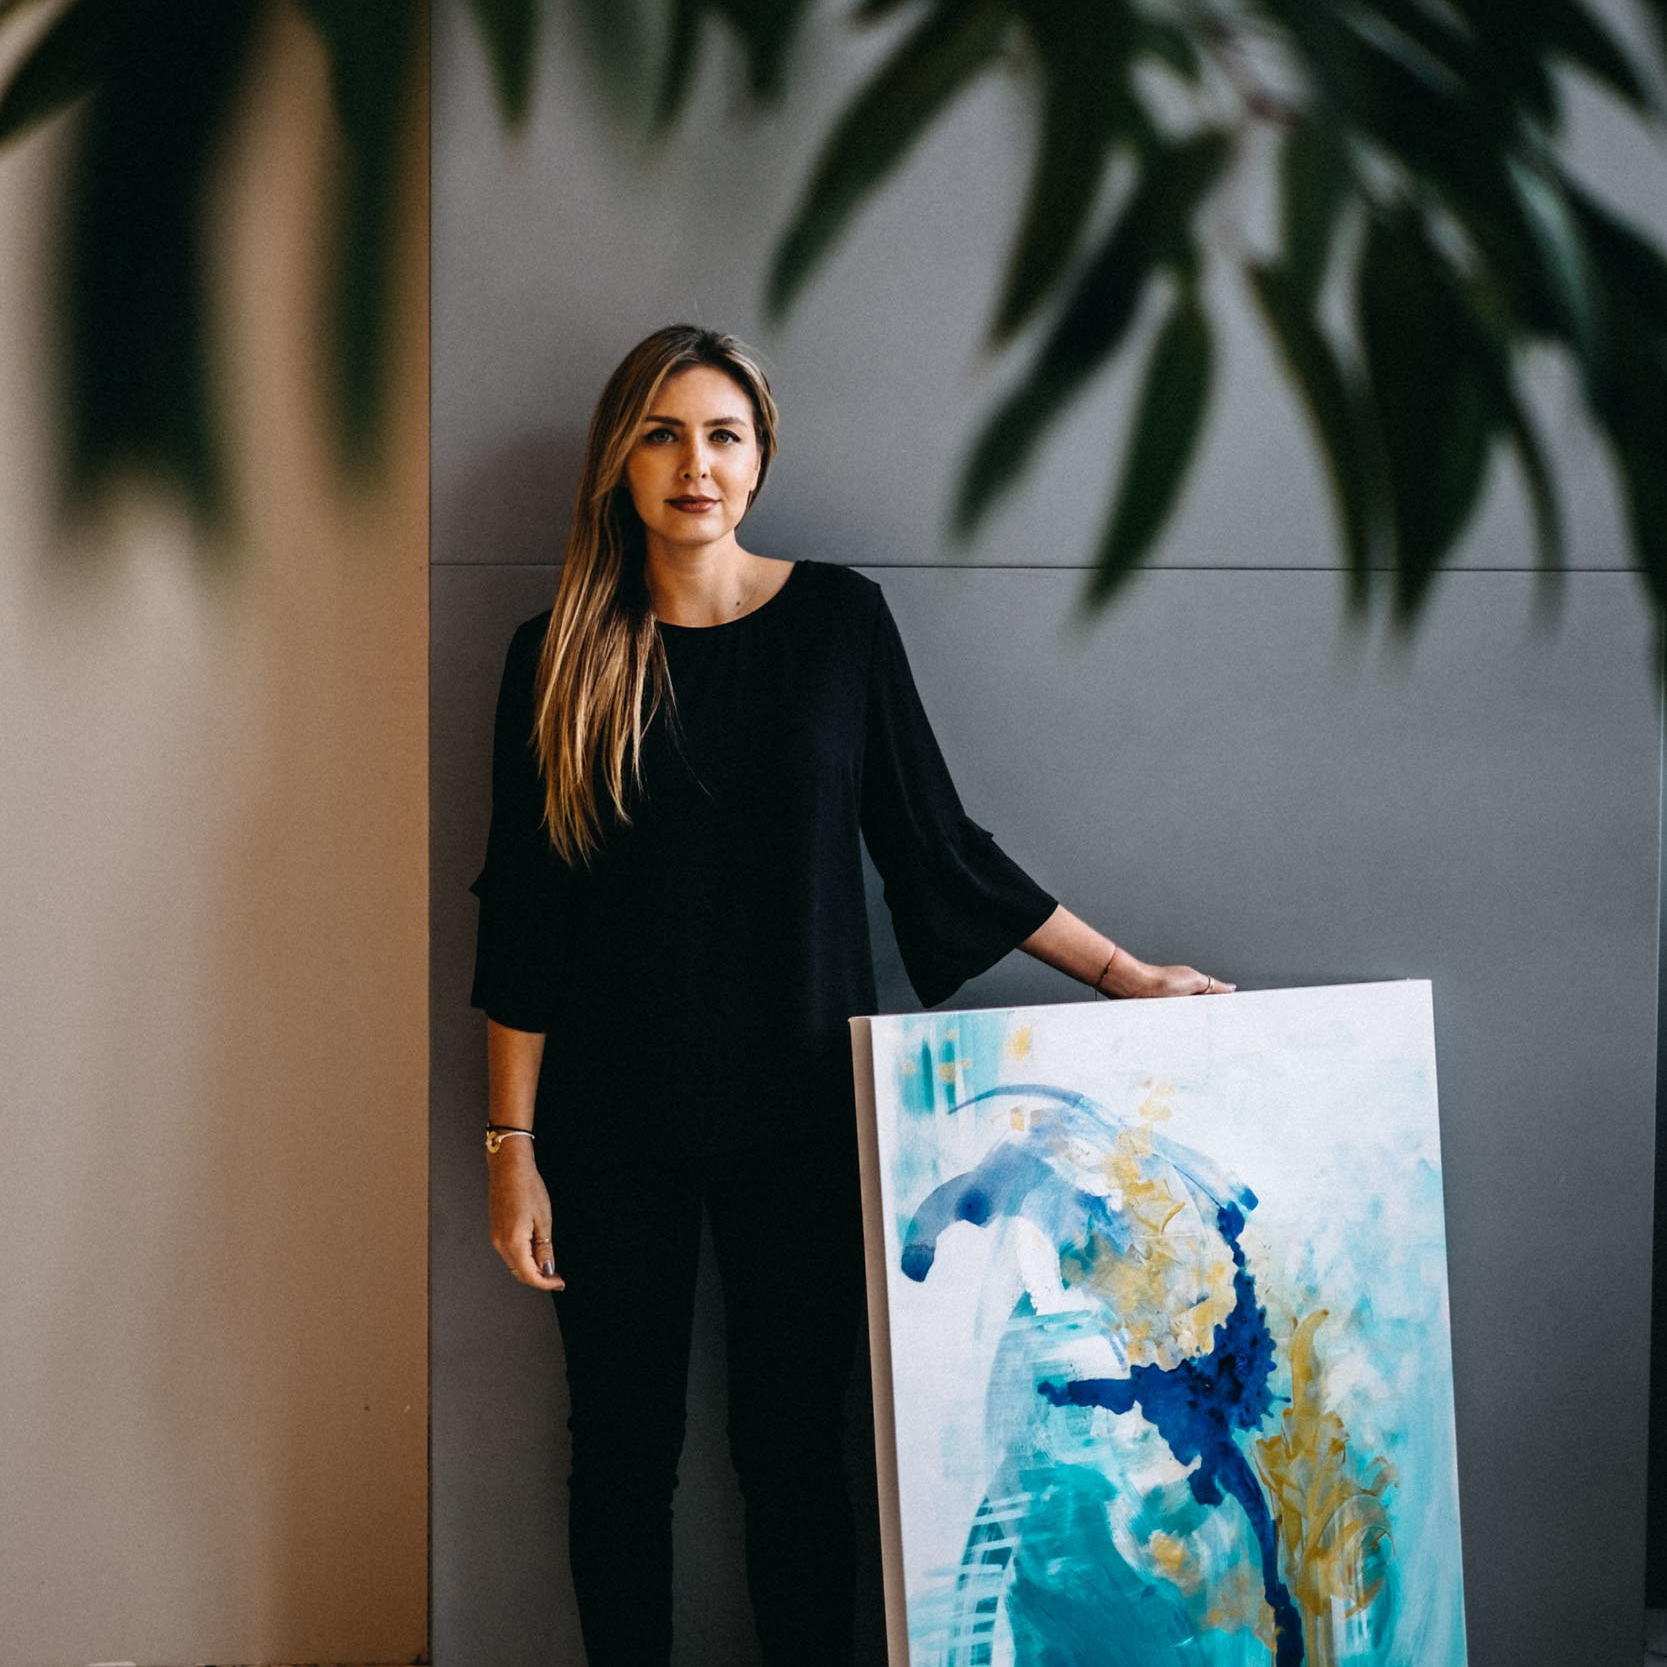 """Balance disorders are not easily understood. Even though those who have them may look fine on the outside, we are actually dealing with terrible symptoms that are extremely debilitating, not only physically, but mentally,"" says artist Nicolle Cure following a challenging, year-long medical journey."